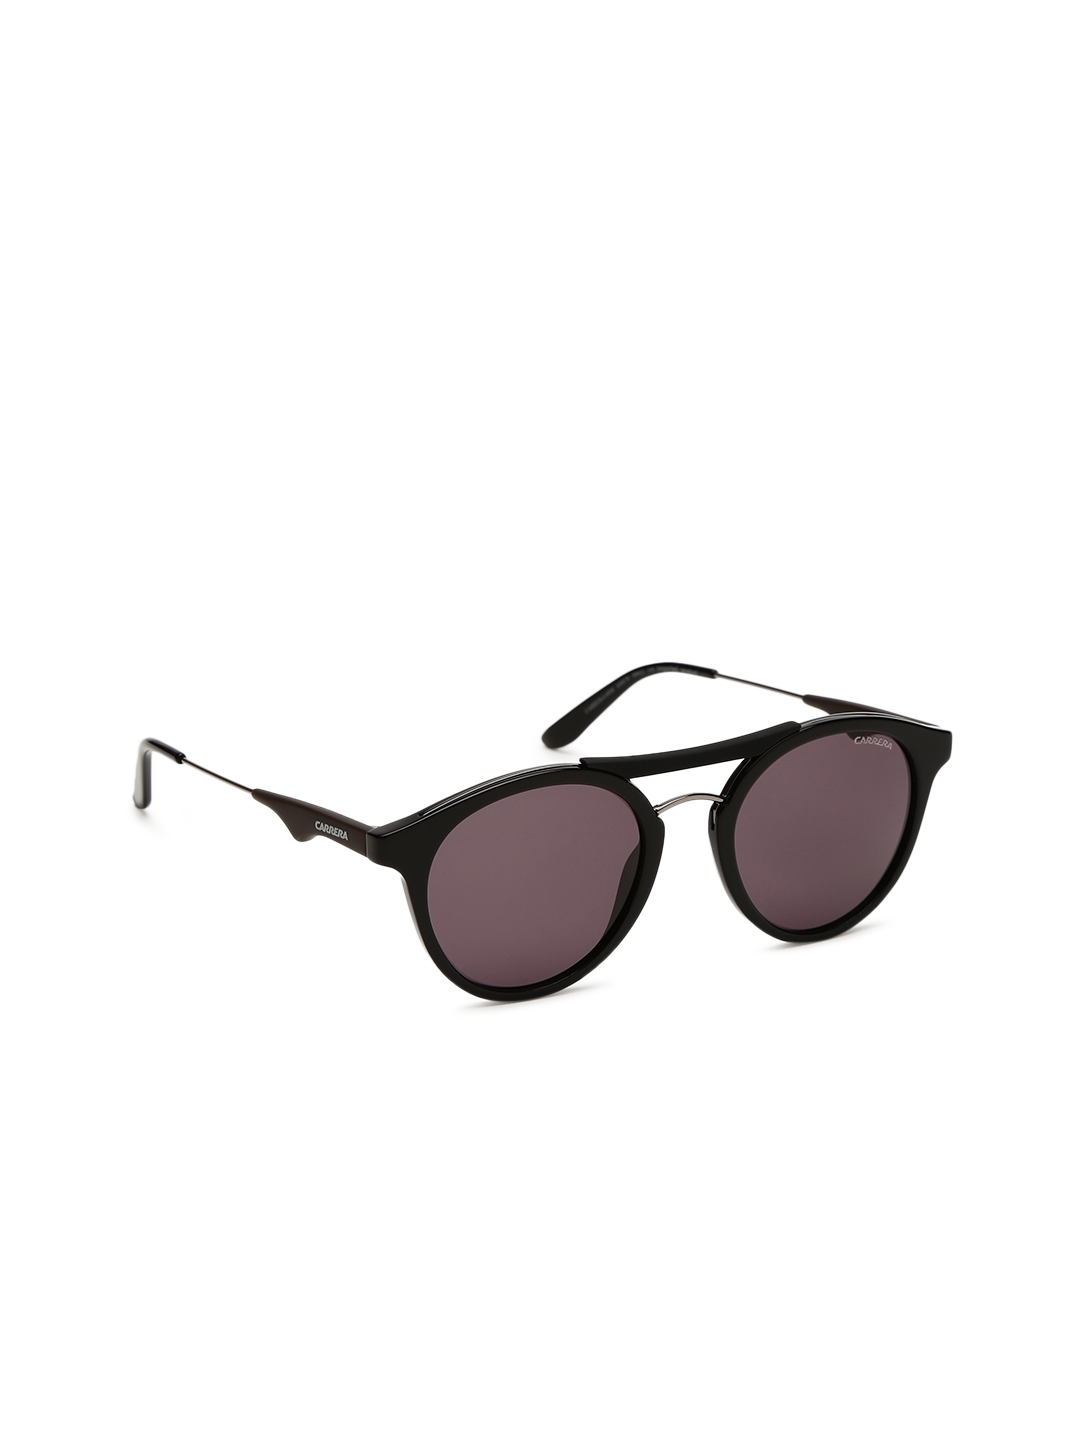 48ea397dcd1d Buy Carrera Unisex Round Sunglasses 6008 ANS 5070 - Sunglasses for ...